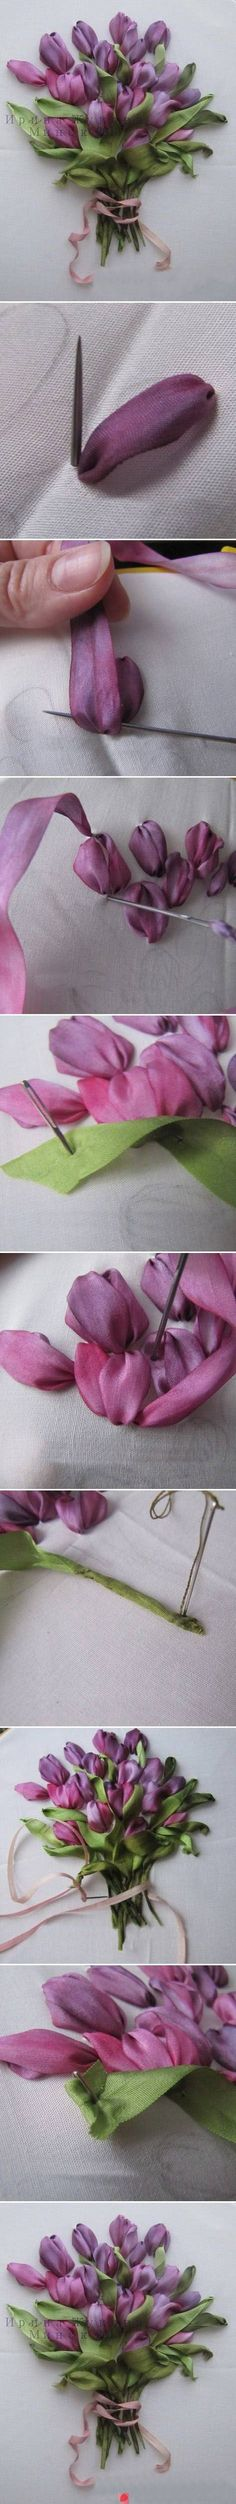 Easy Ribbon Embroidery- think of the possibilities!